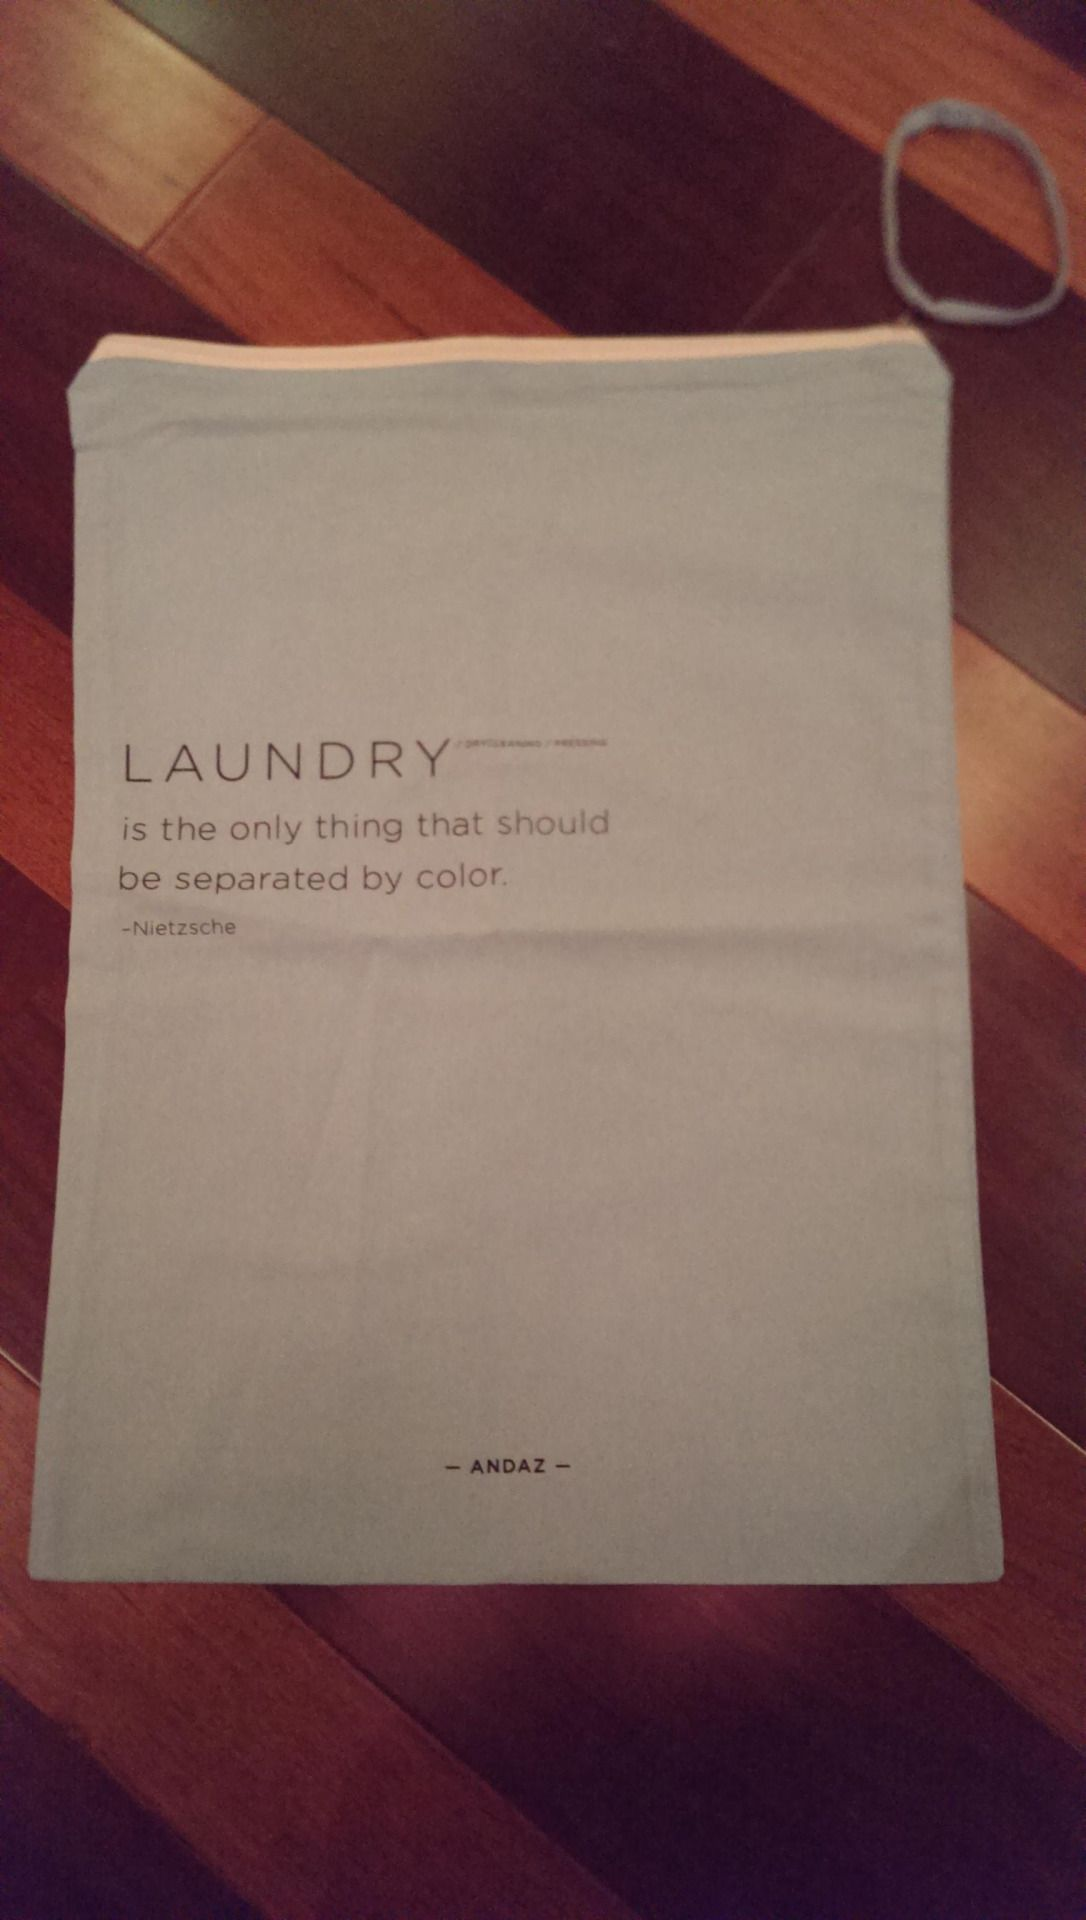 Re Hotels Laundry Bag Has A Quote From Nietzsche On It Via